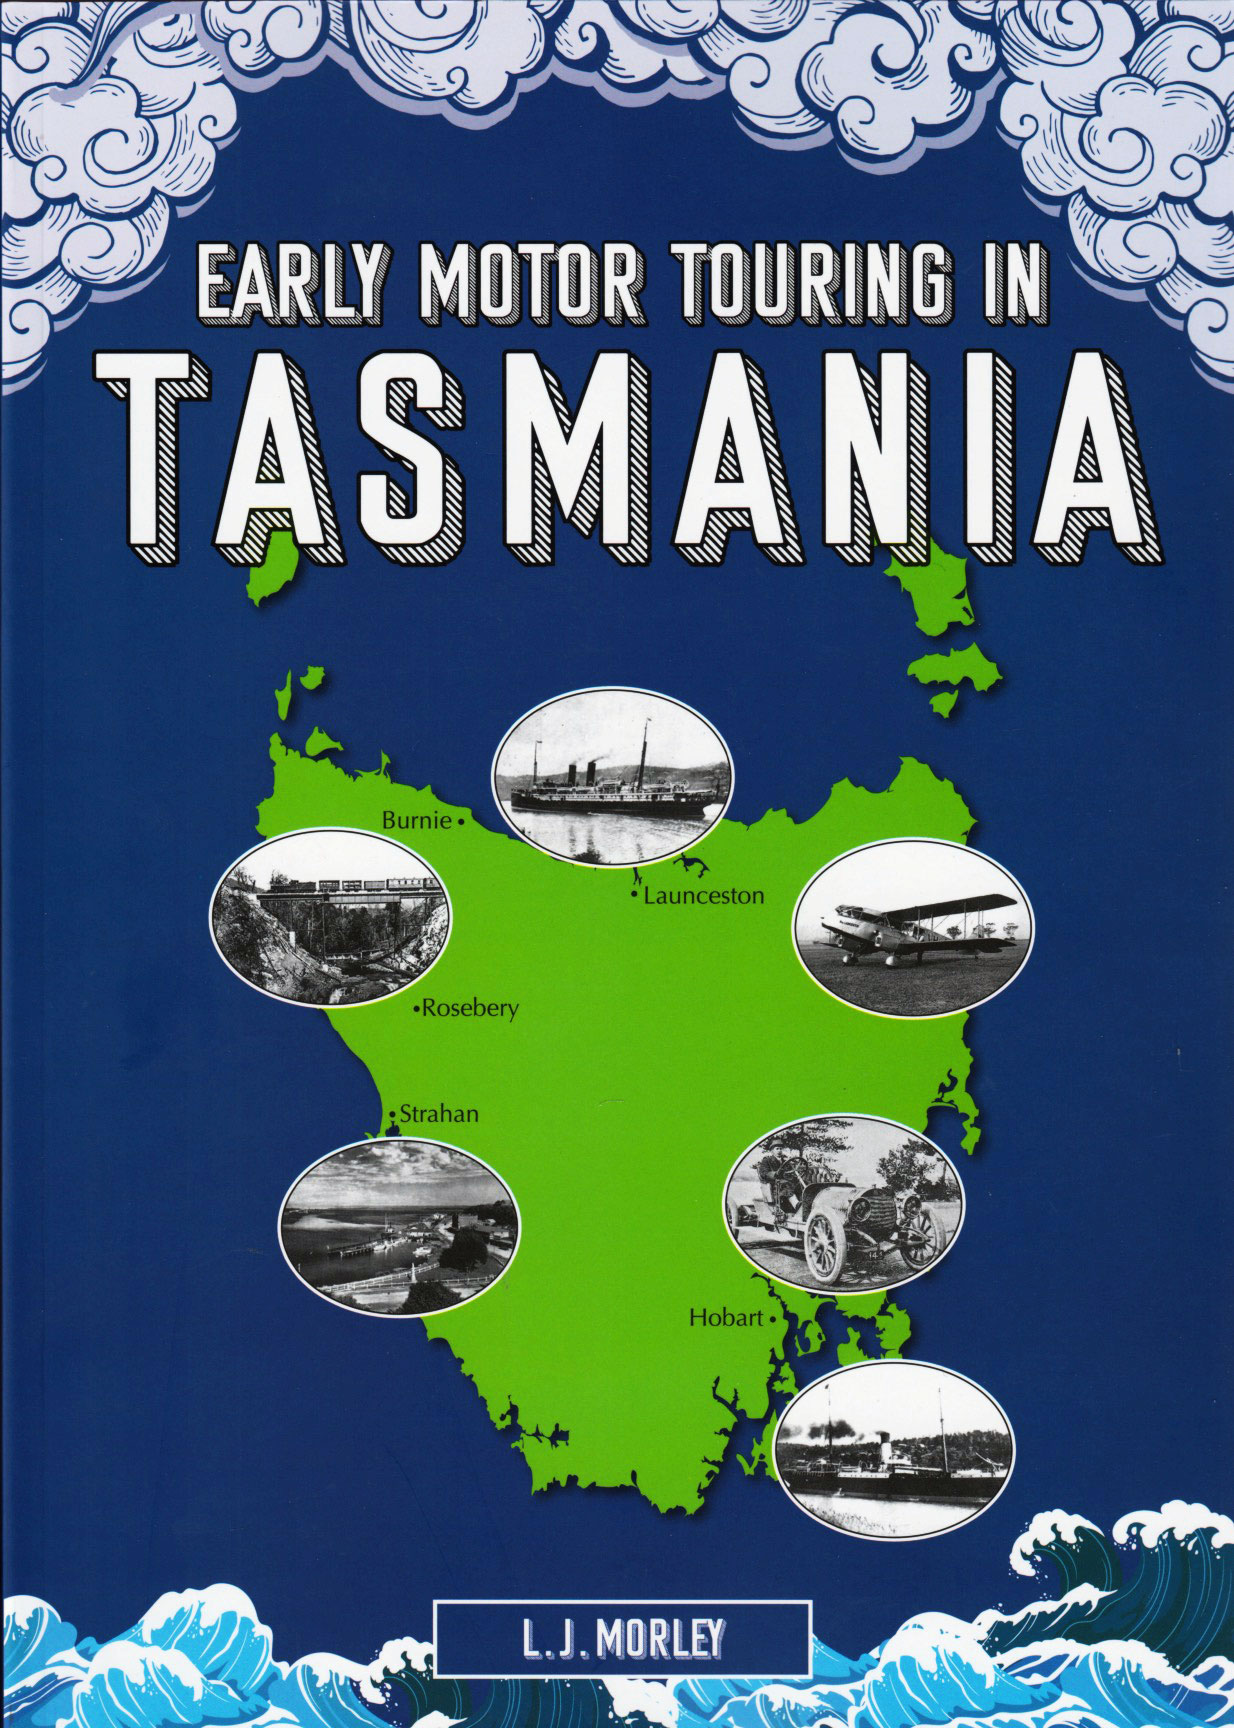 Early Motoring in Tasmania